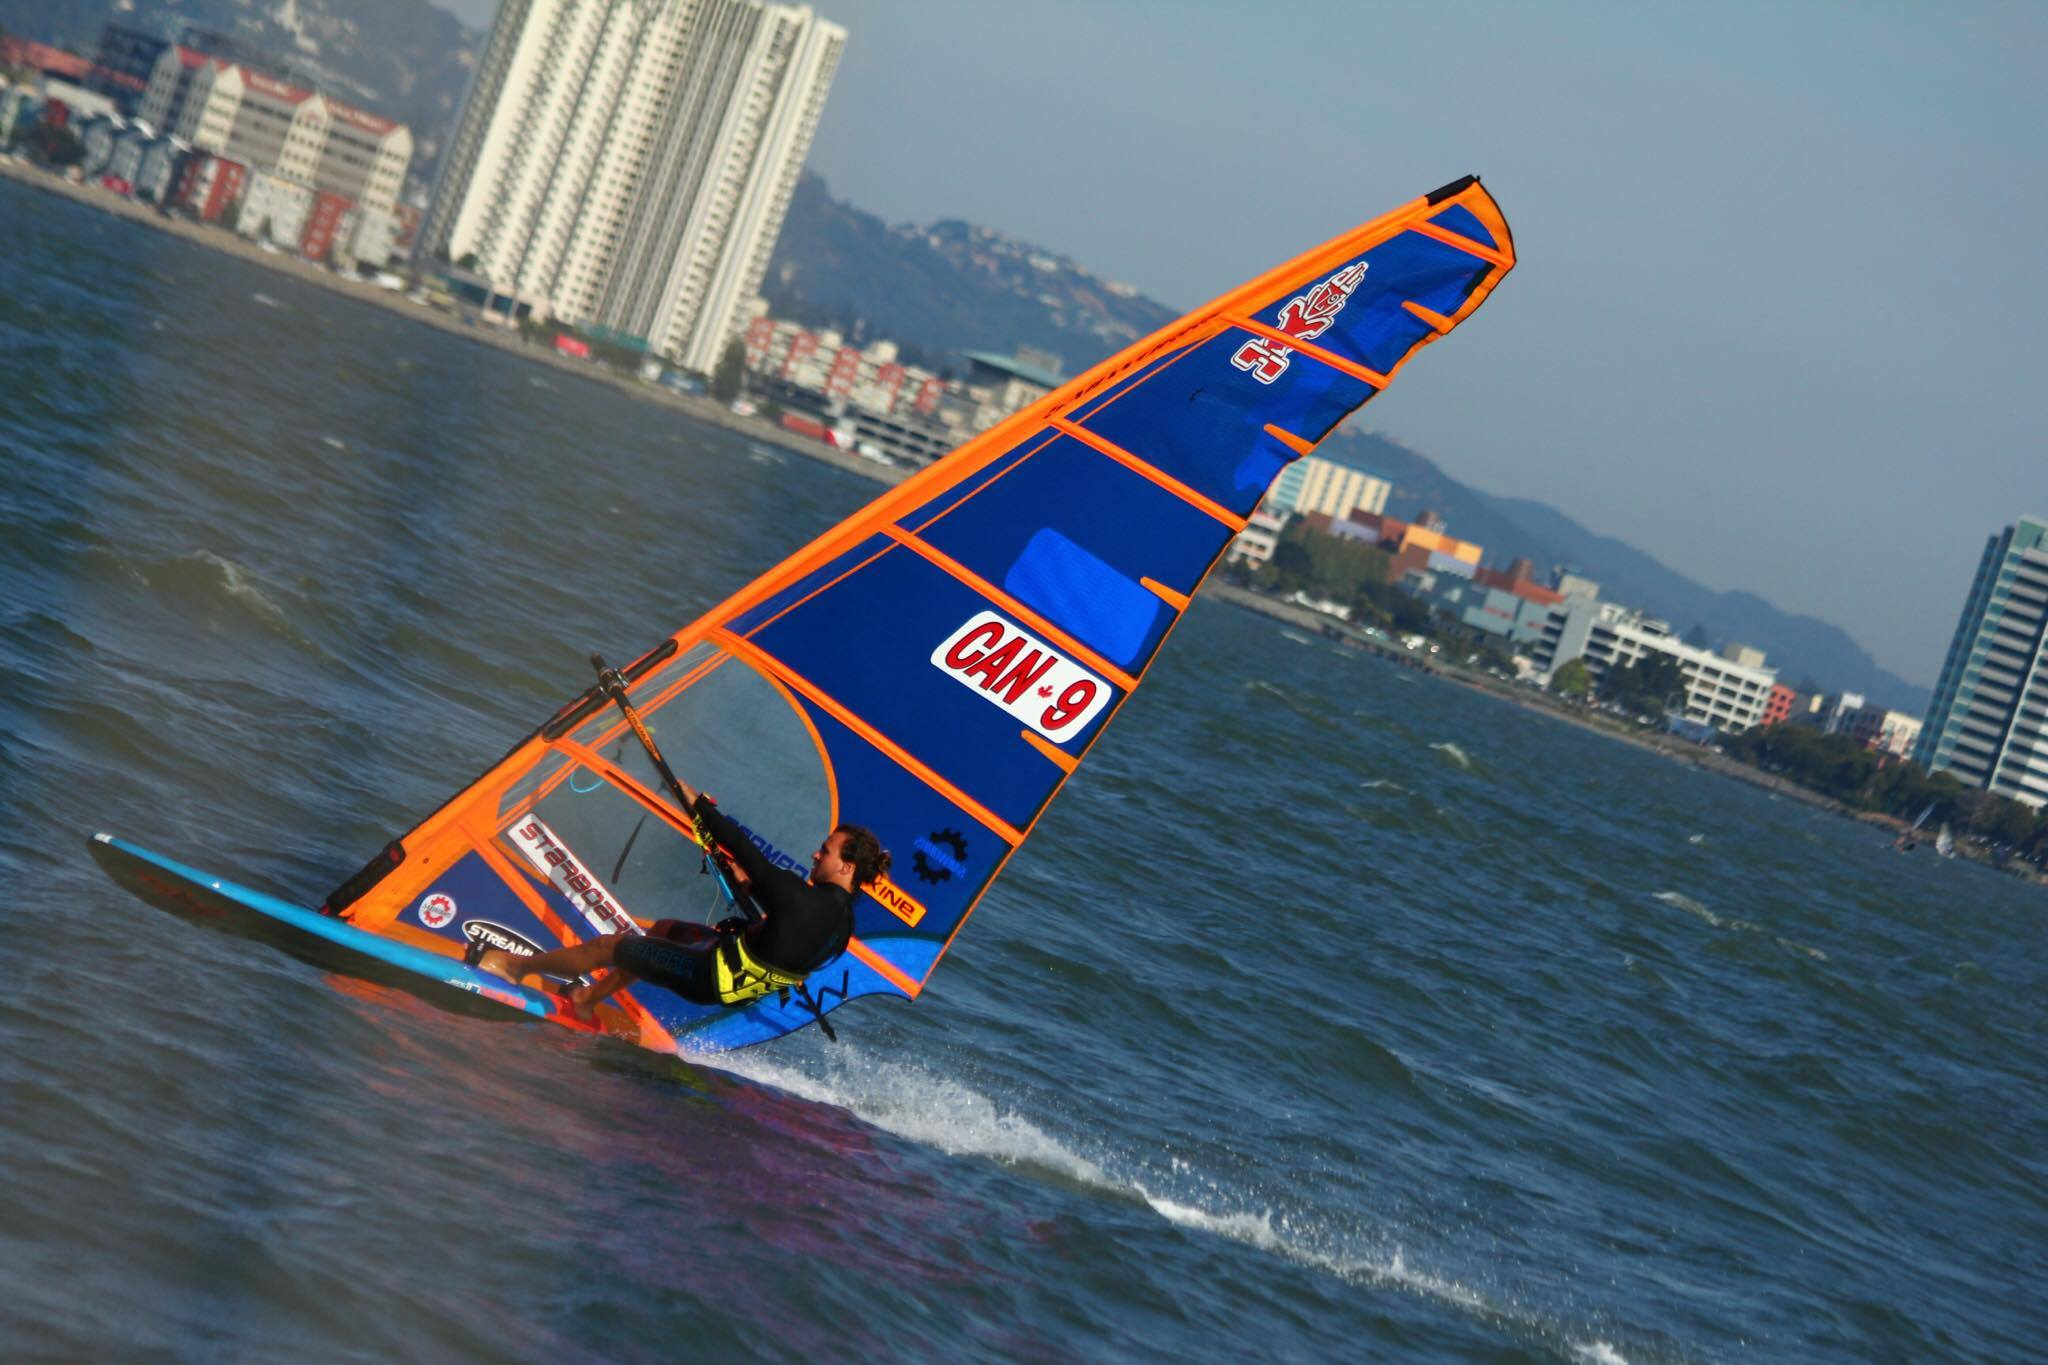 Phil Soltysiak windsurfing with the 8.6 NX and ISonic 117. Photo by Lyrah Colvin.